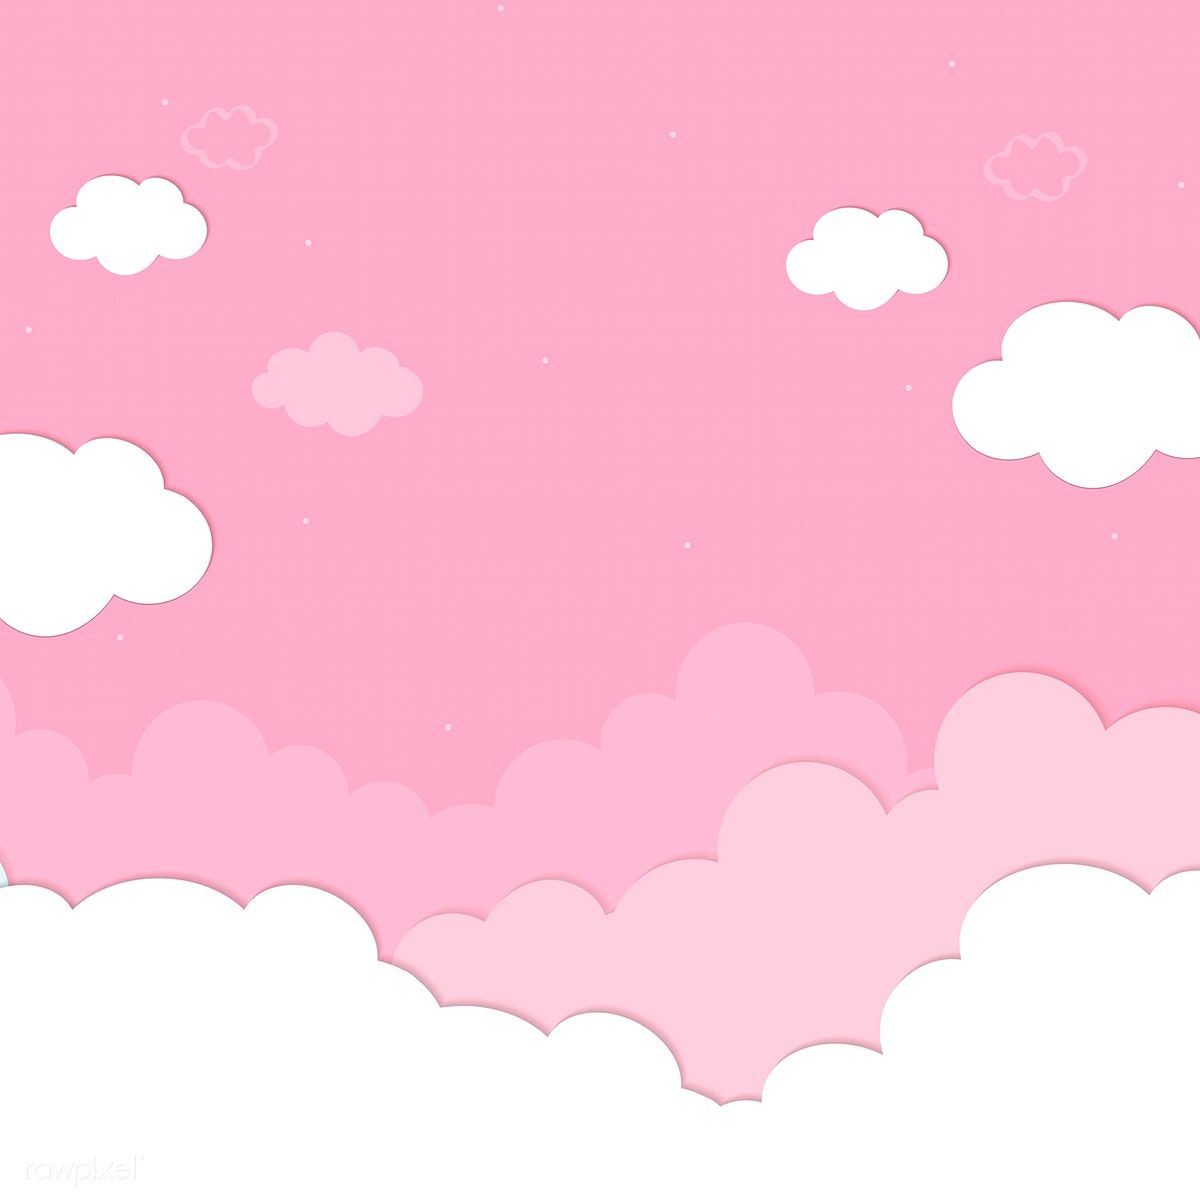 Download Free Illustration Of Pink Sky With Clouds Wallpaper Vector By Chayanit About Backdrop Background Blank Cloud Wallpaper Pink Sky Cloud Illustration